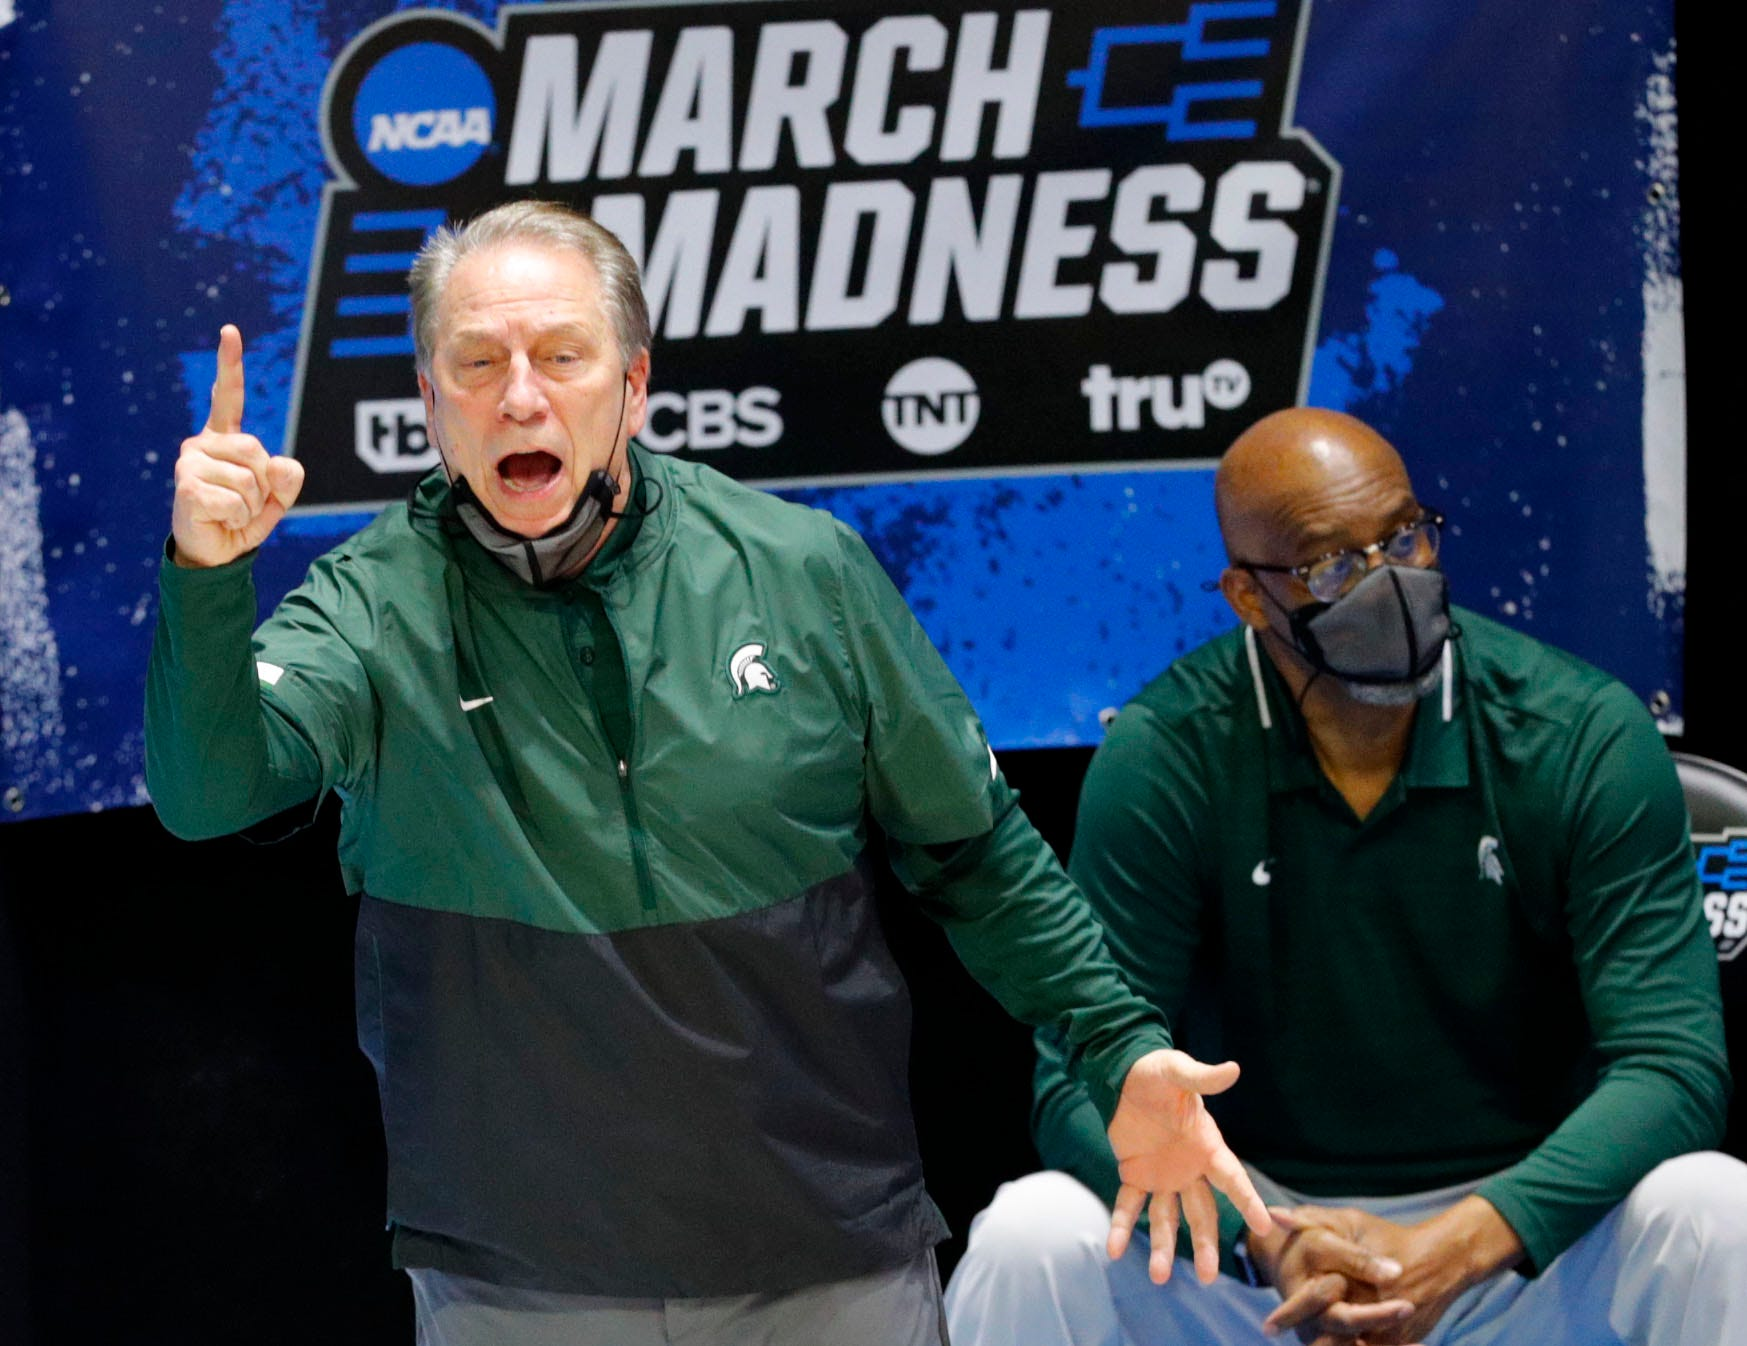 Michigan State's Tom Izzo has 'no intentions' to retire despite college basketball changes